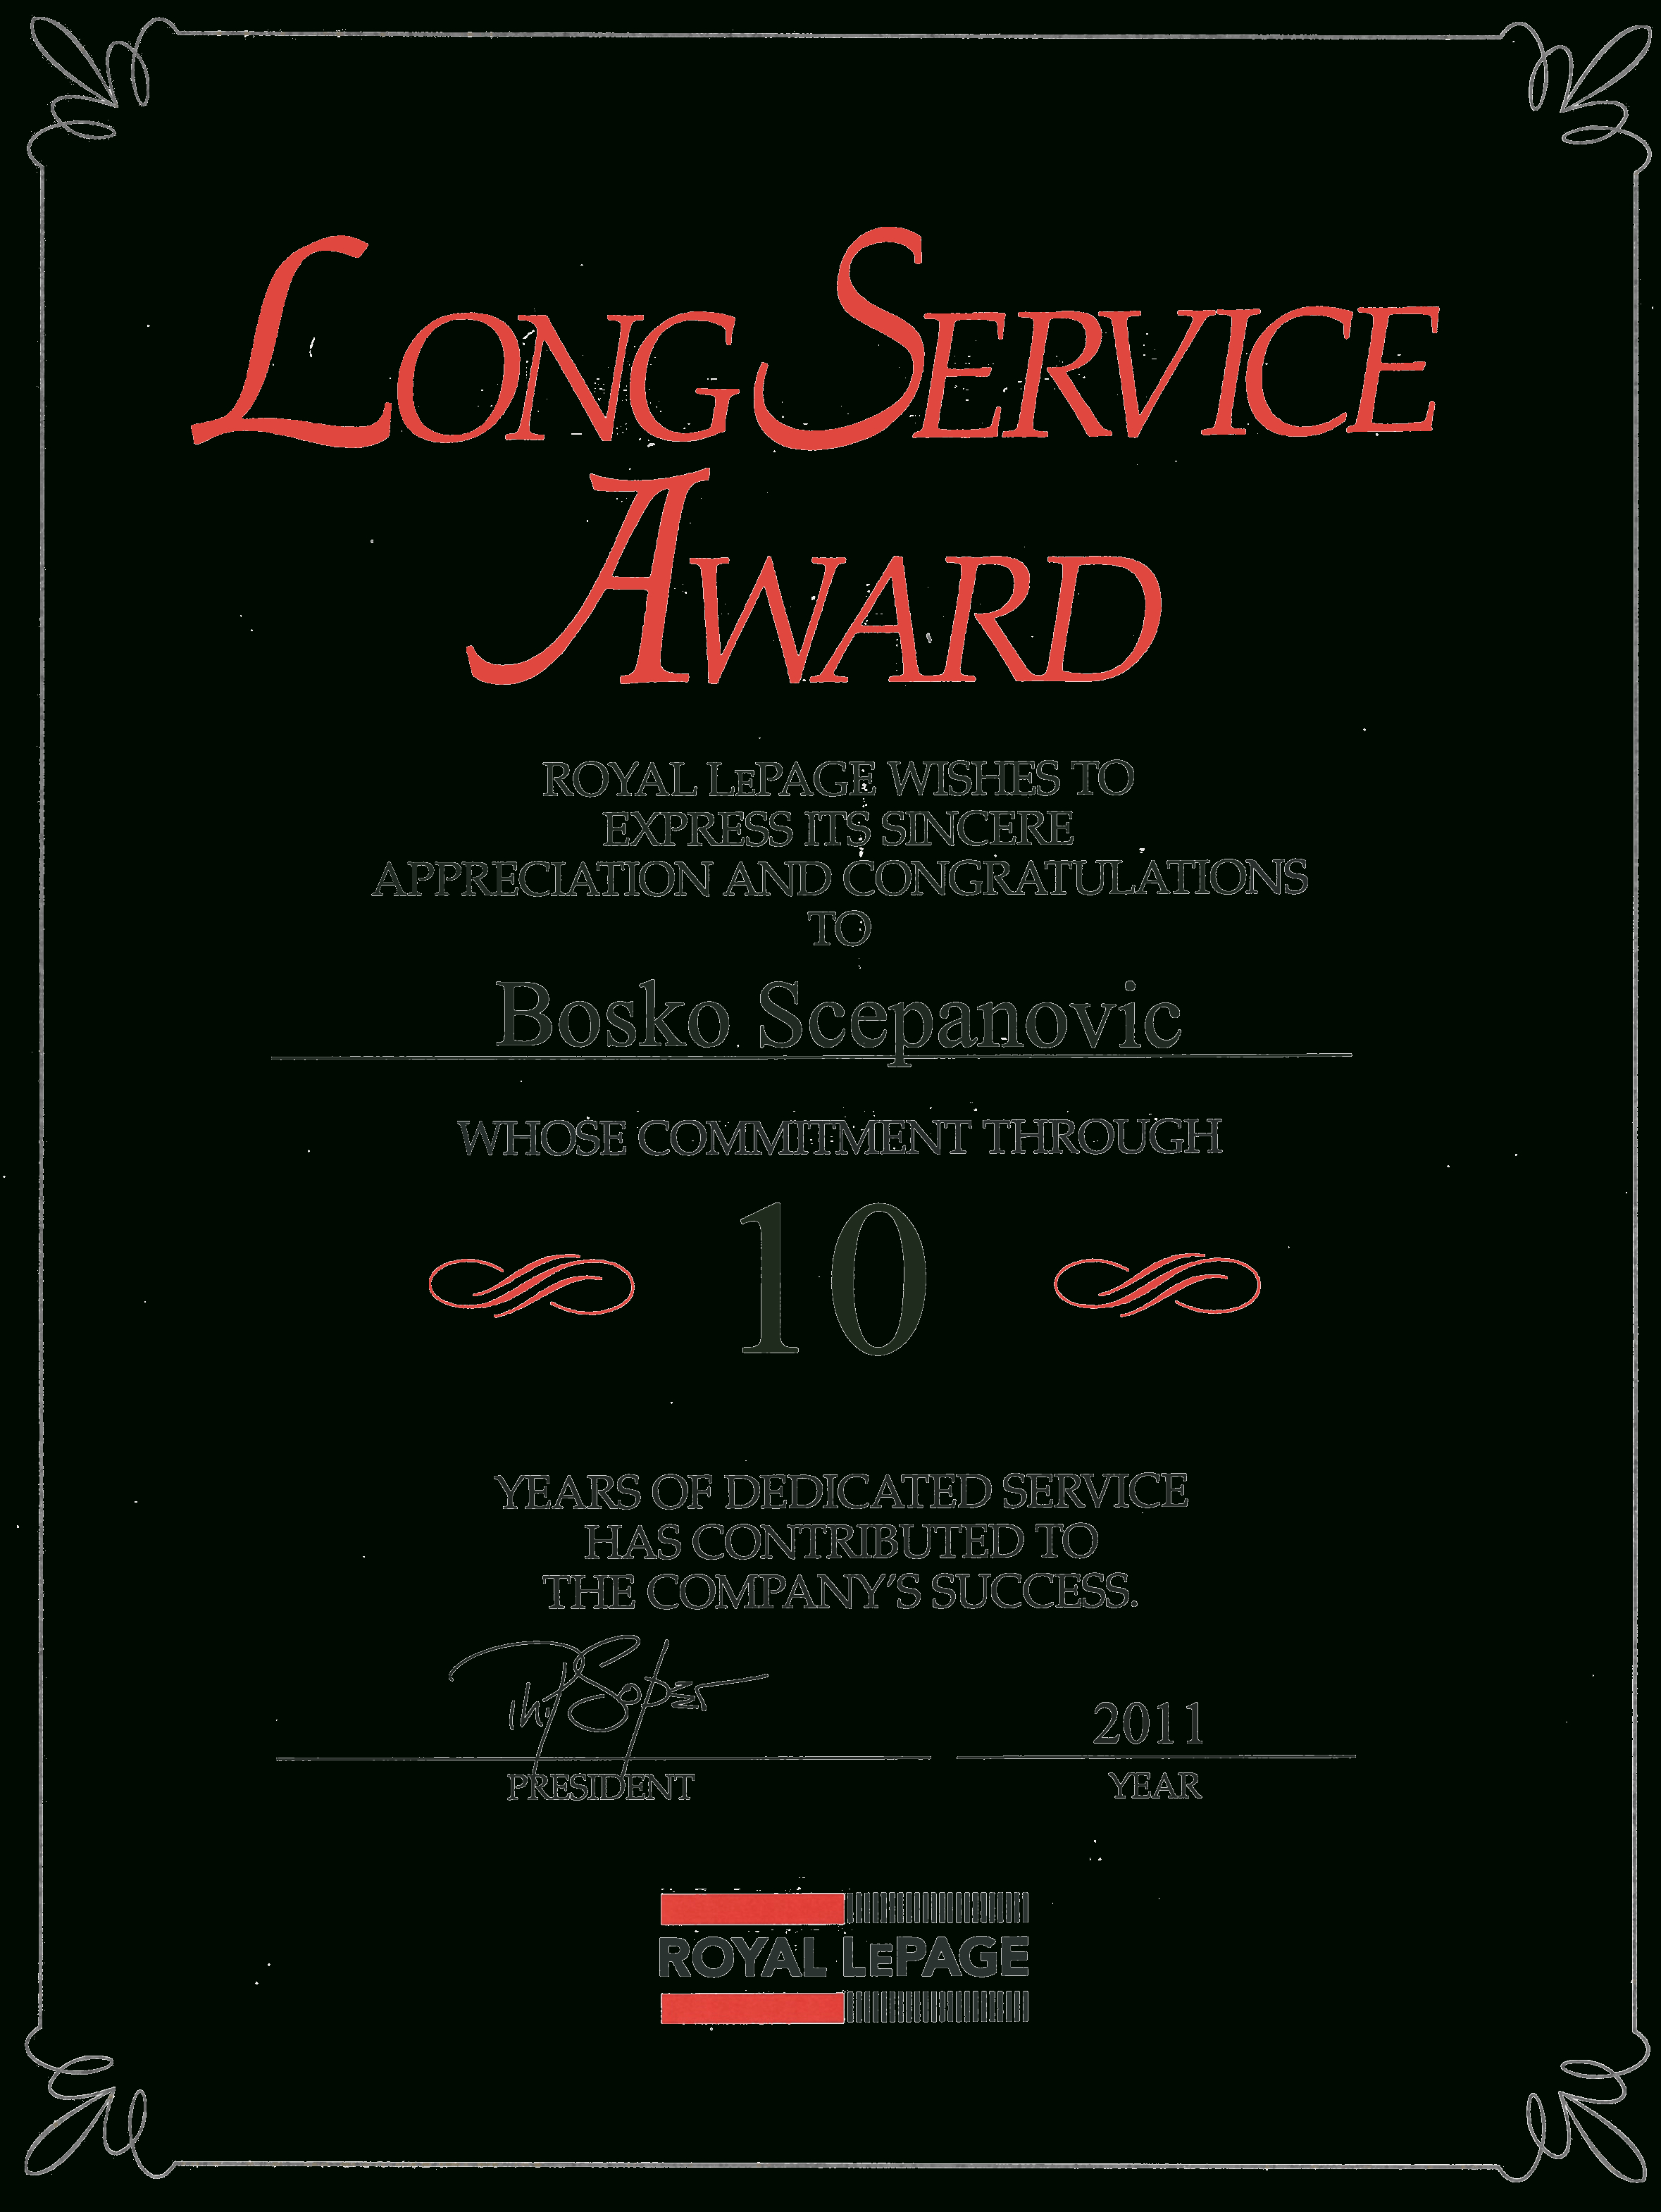 Long Service Award Certificate Template Free Download Printable 46 - Commitment Certificate Free Printable